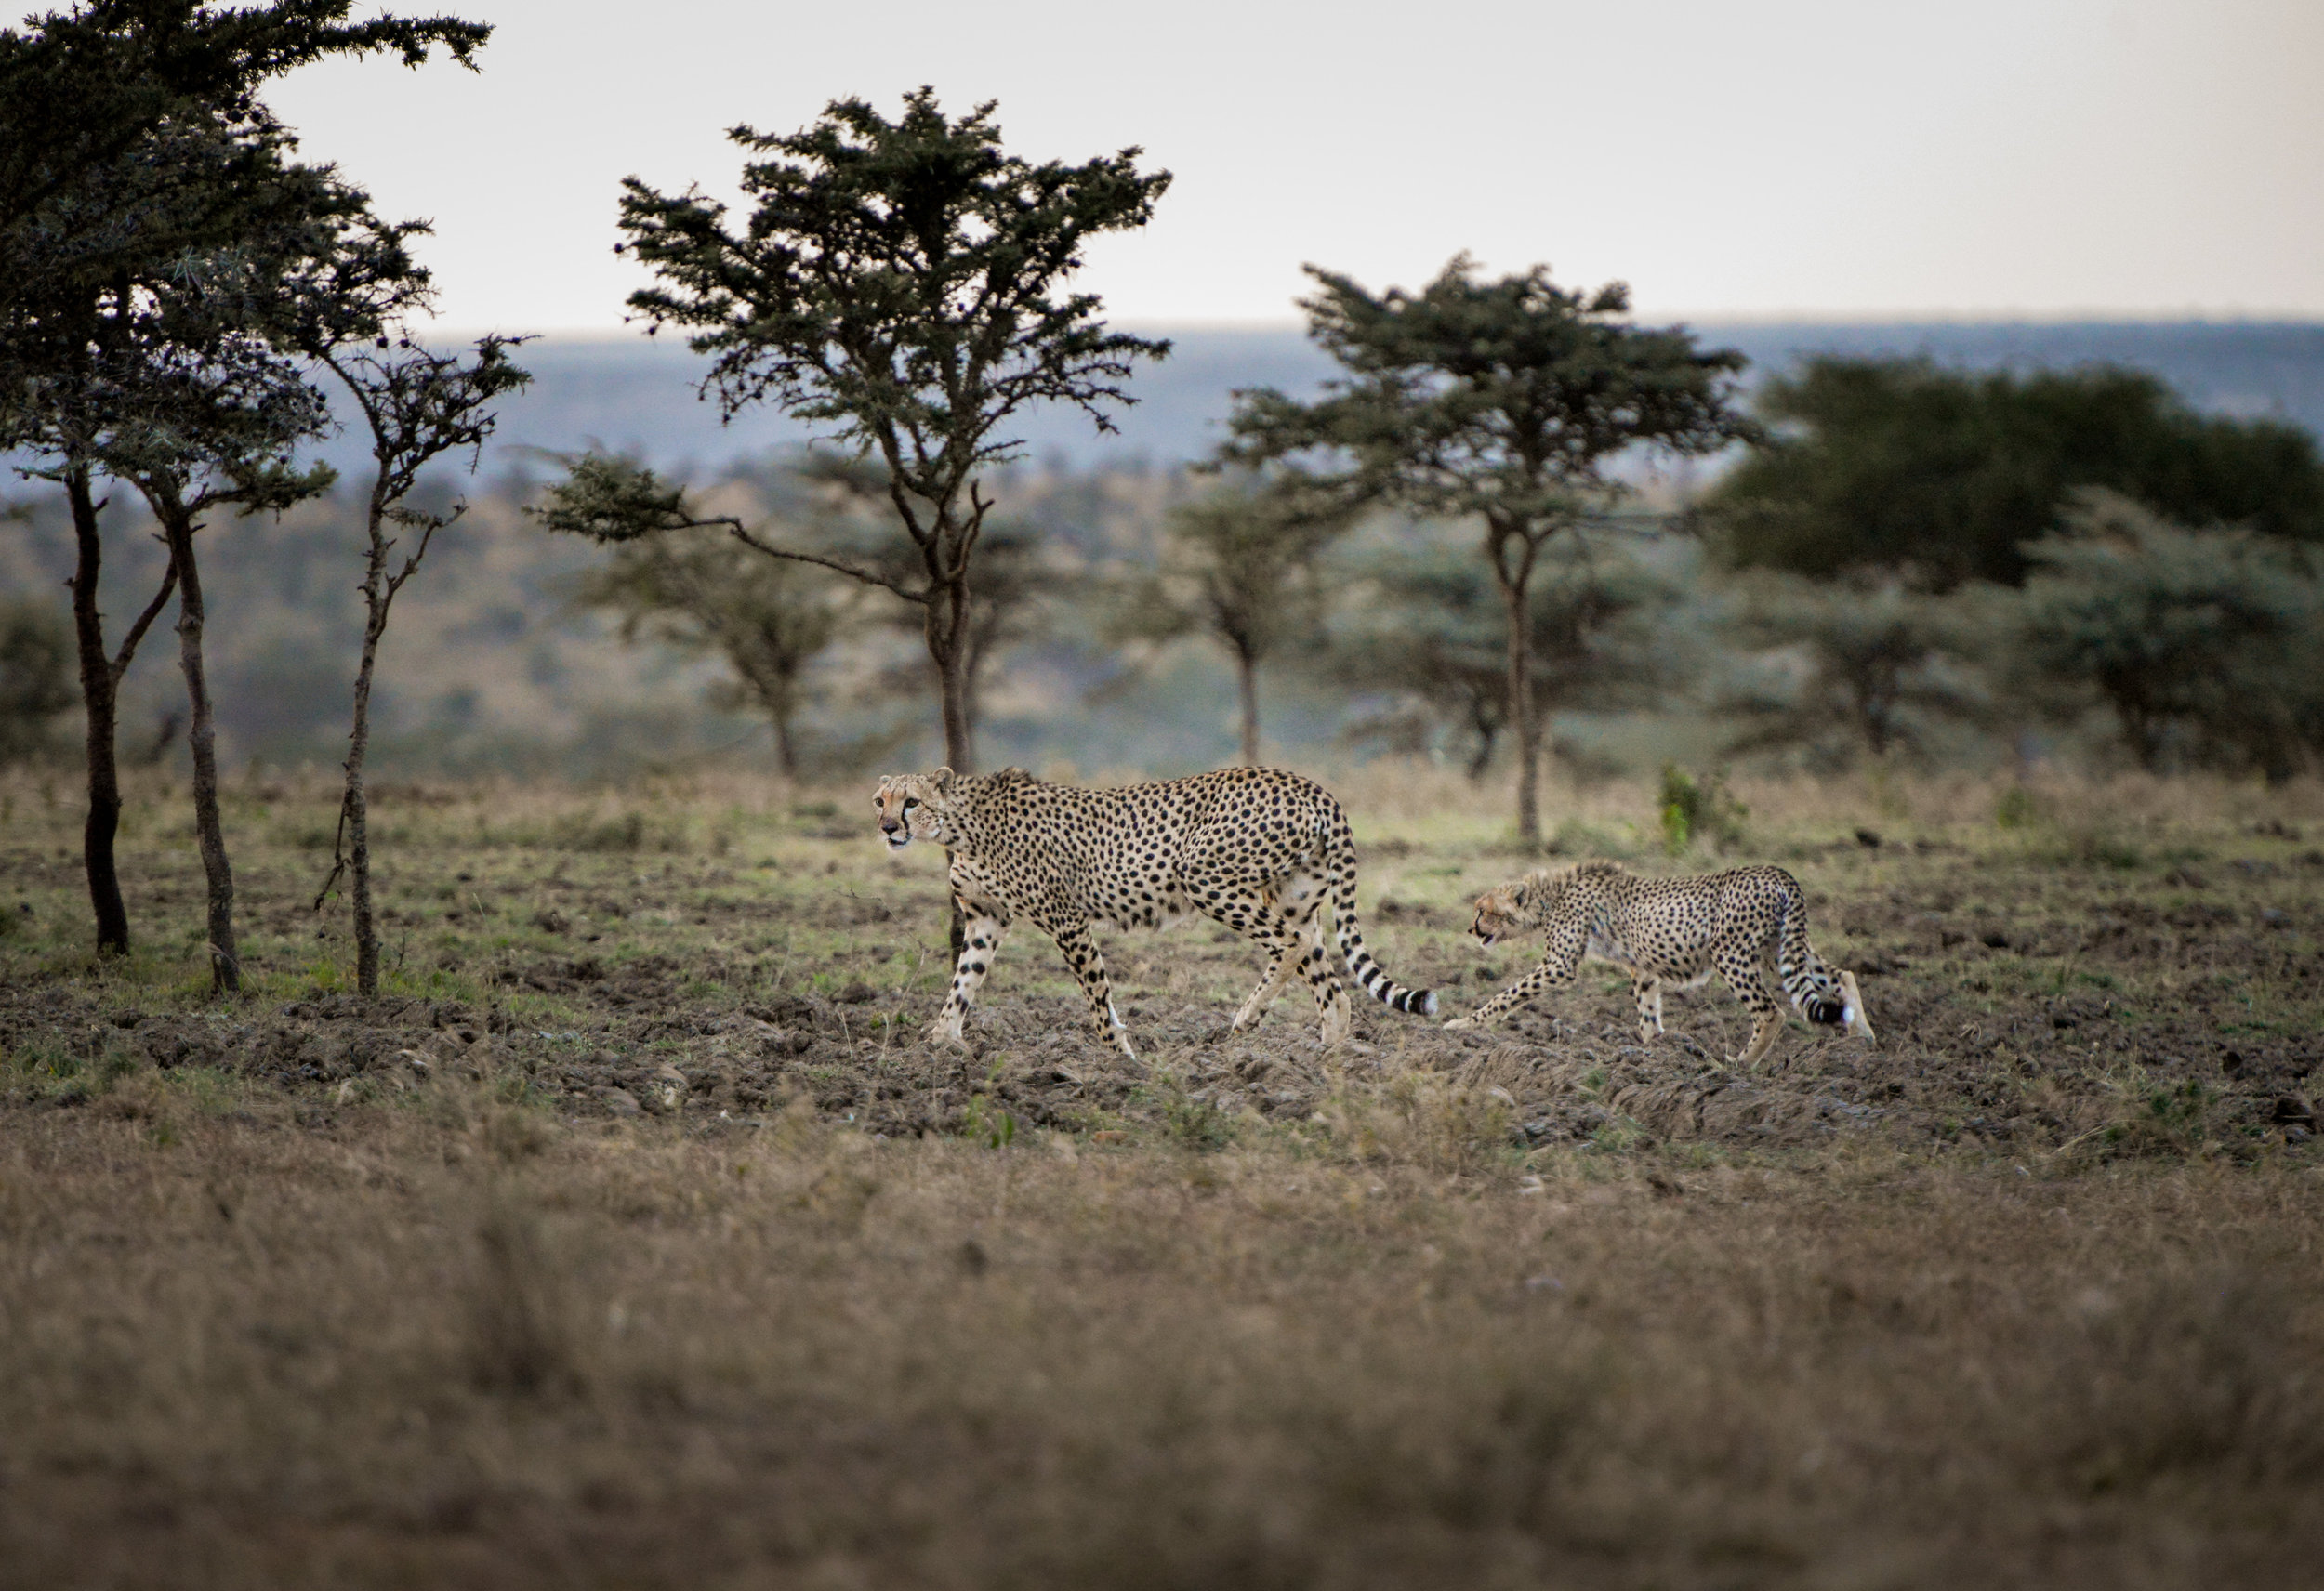 A cheetah and her cub after a kill on El Karama Ranch in the Laikipia region of Kenya